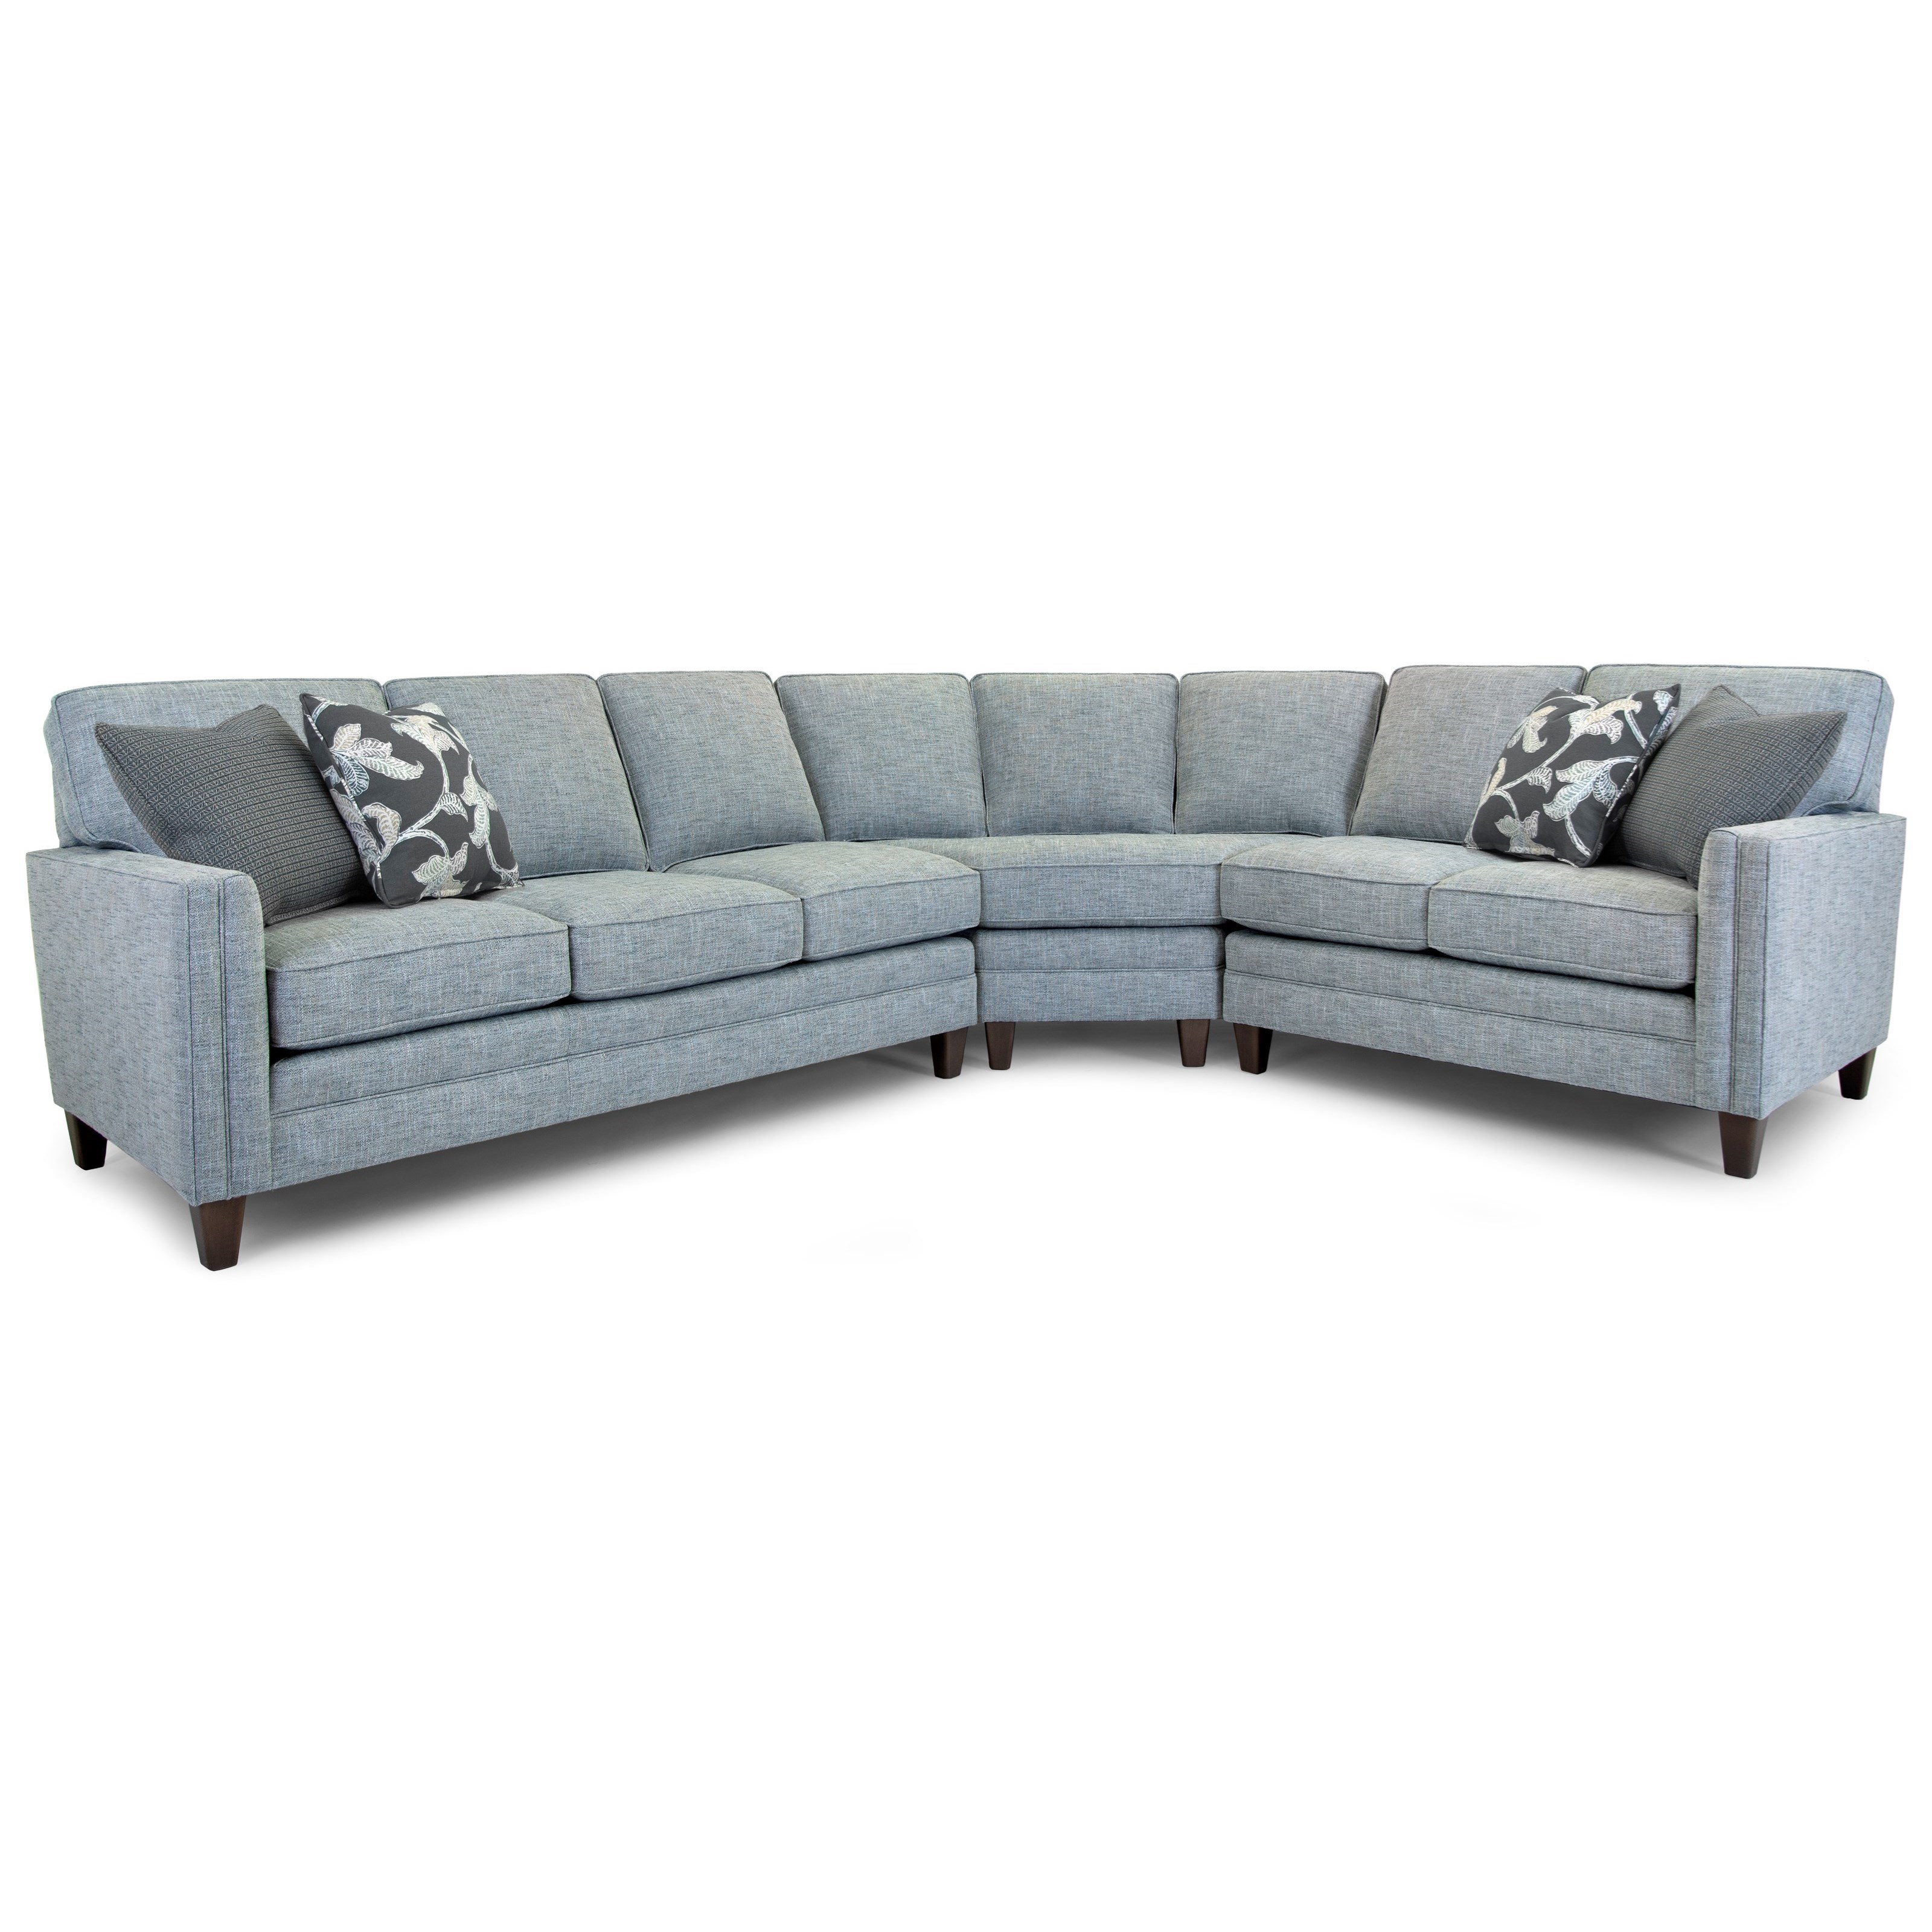 Build Your Own 3000 Series Customizable 3-Piece Sectional by Smith Brothers at Story & Lee Furniture